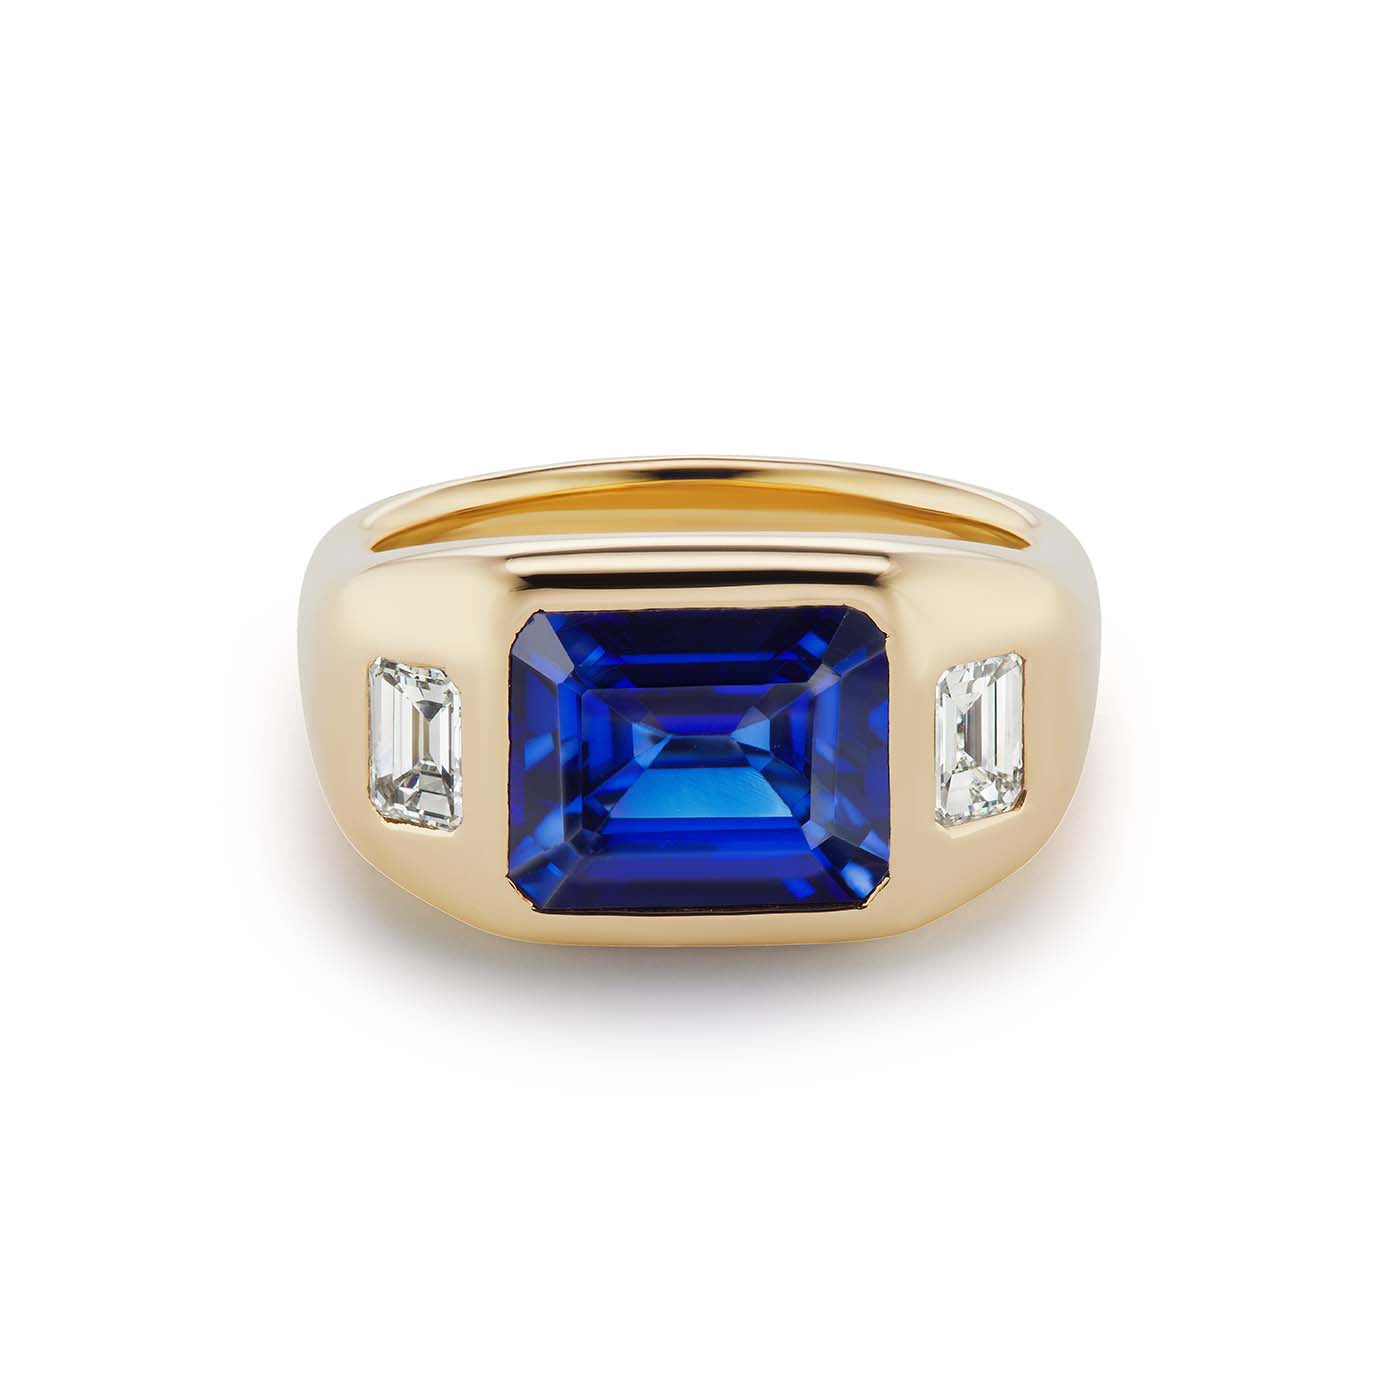 One-of-a-Kind Emerald Cut Sapphire Gypsy with Emerald Cut Diamond Sides